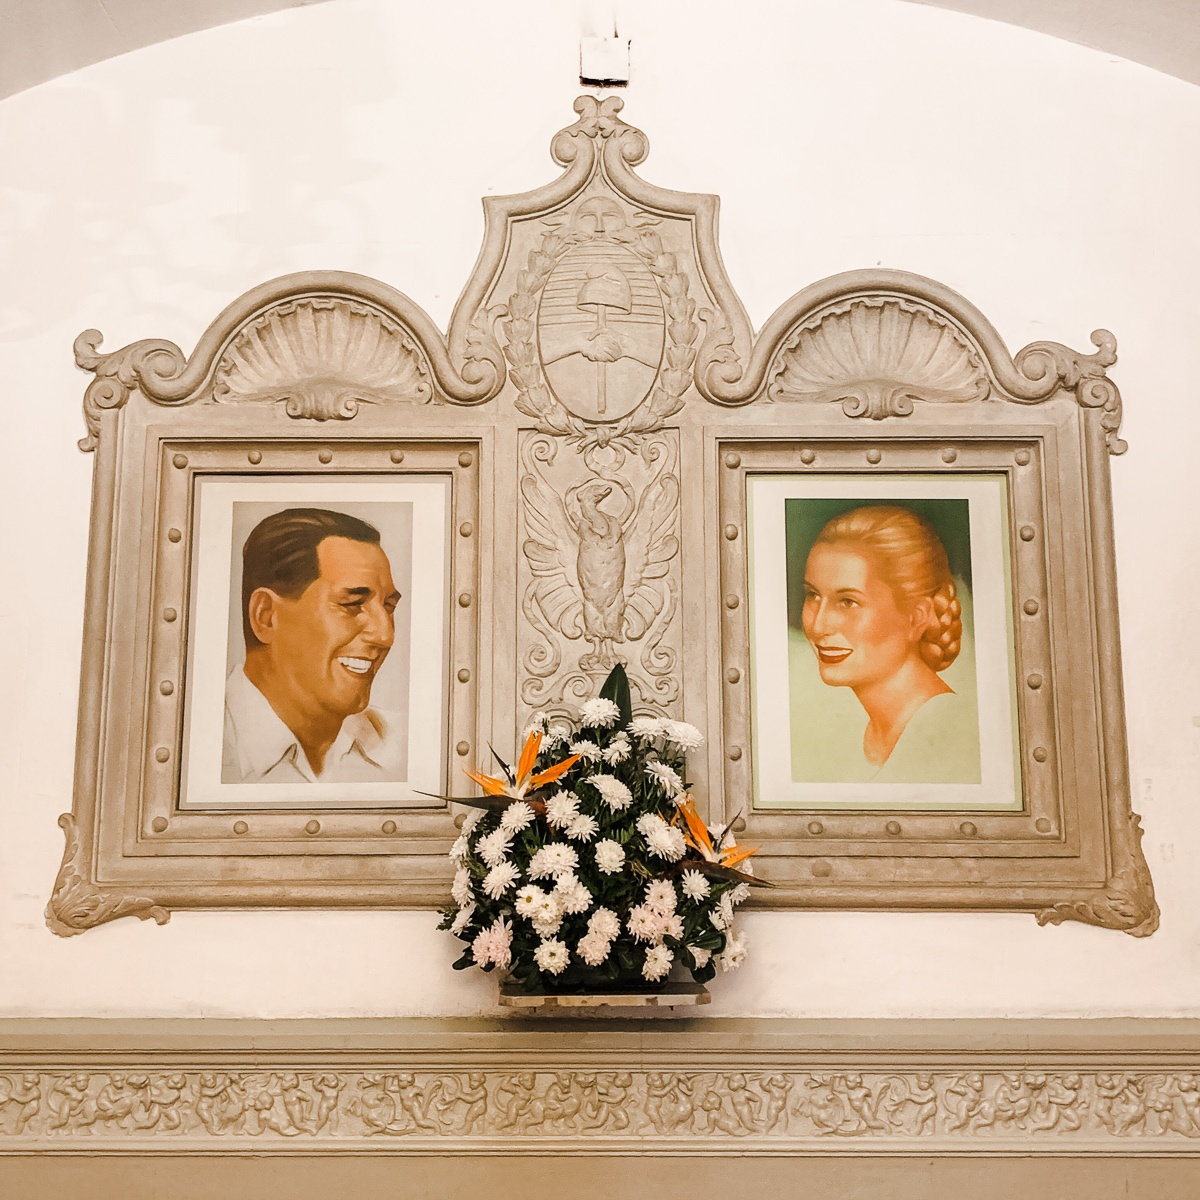 Portraits of Juan and Evita Perón at Museo Evita